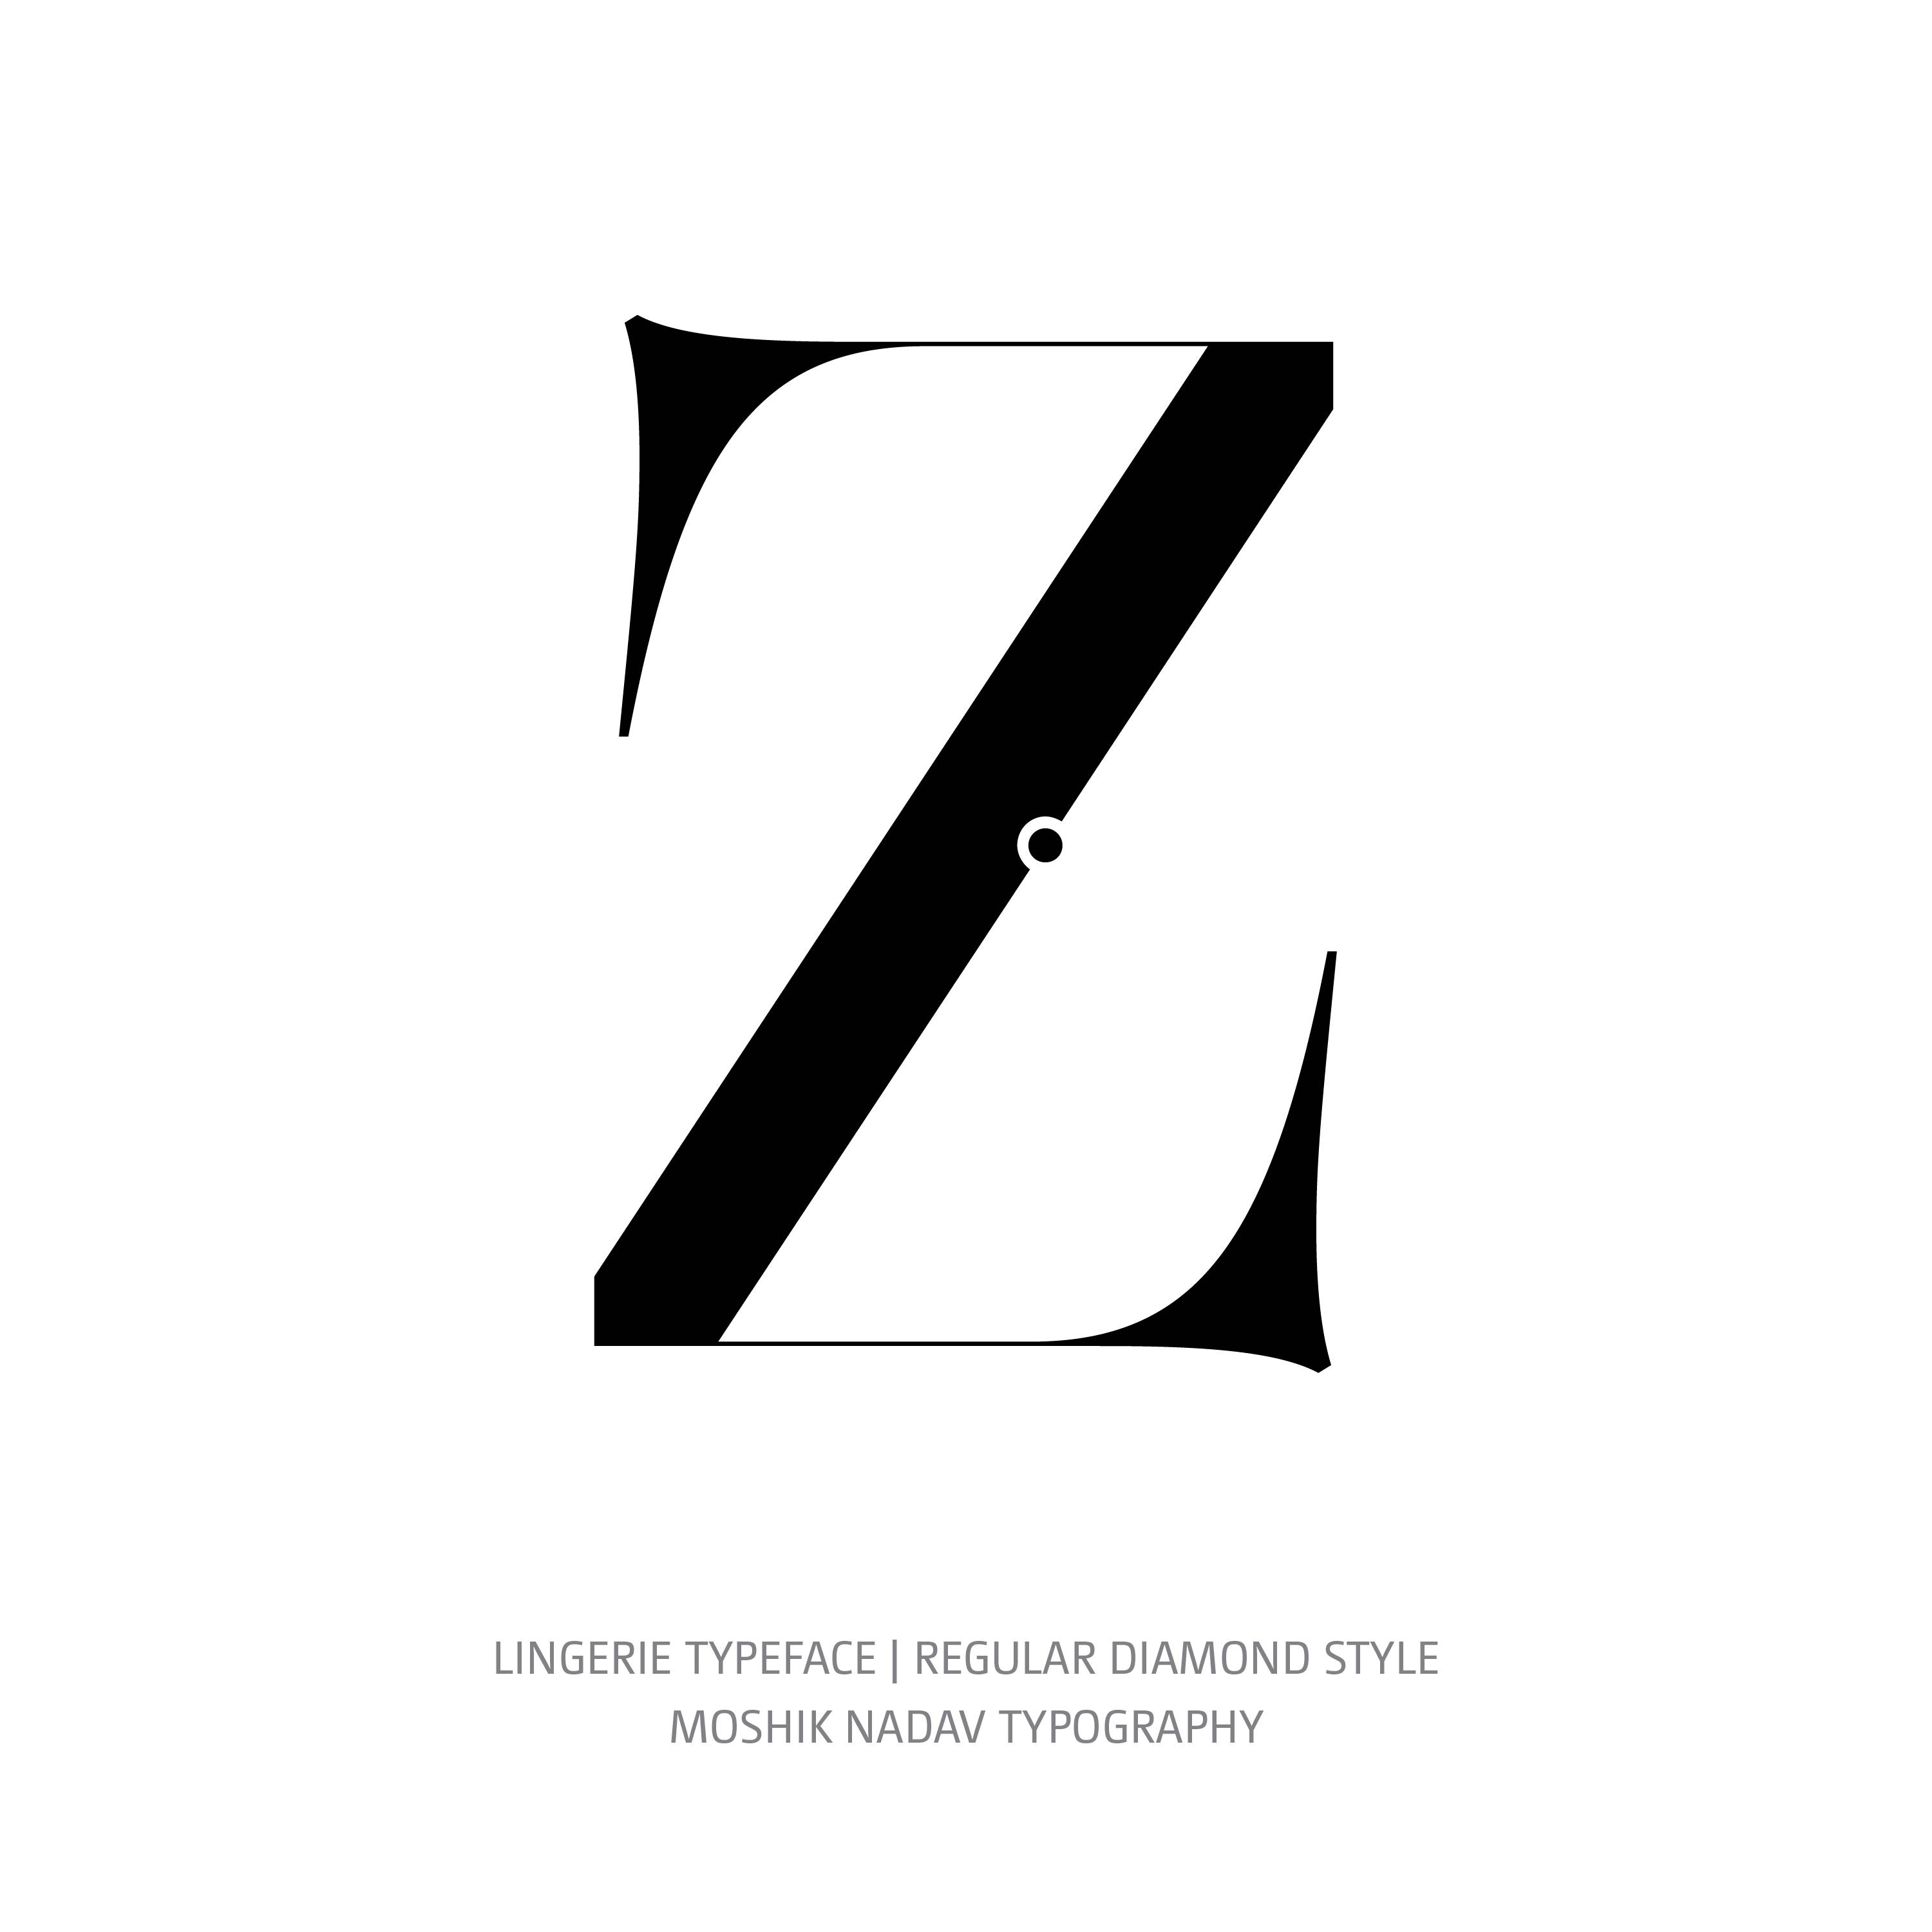 Lingerie Typeface Regular Diamond Z